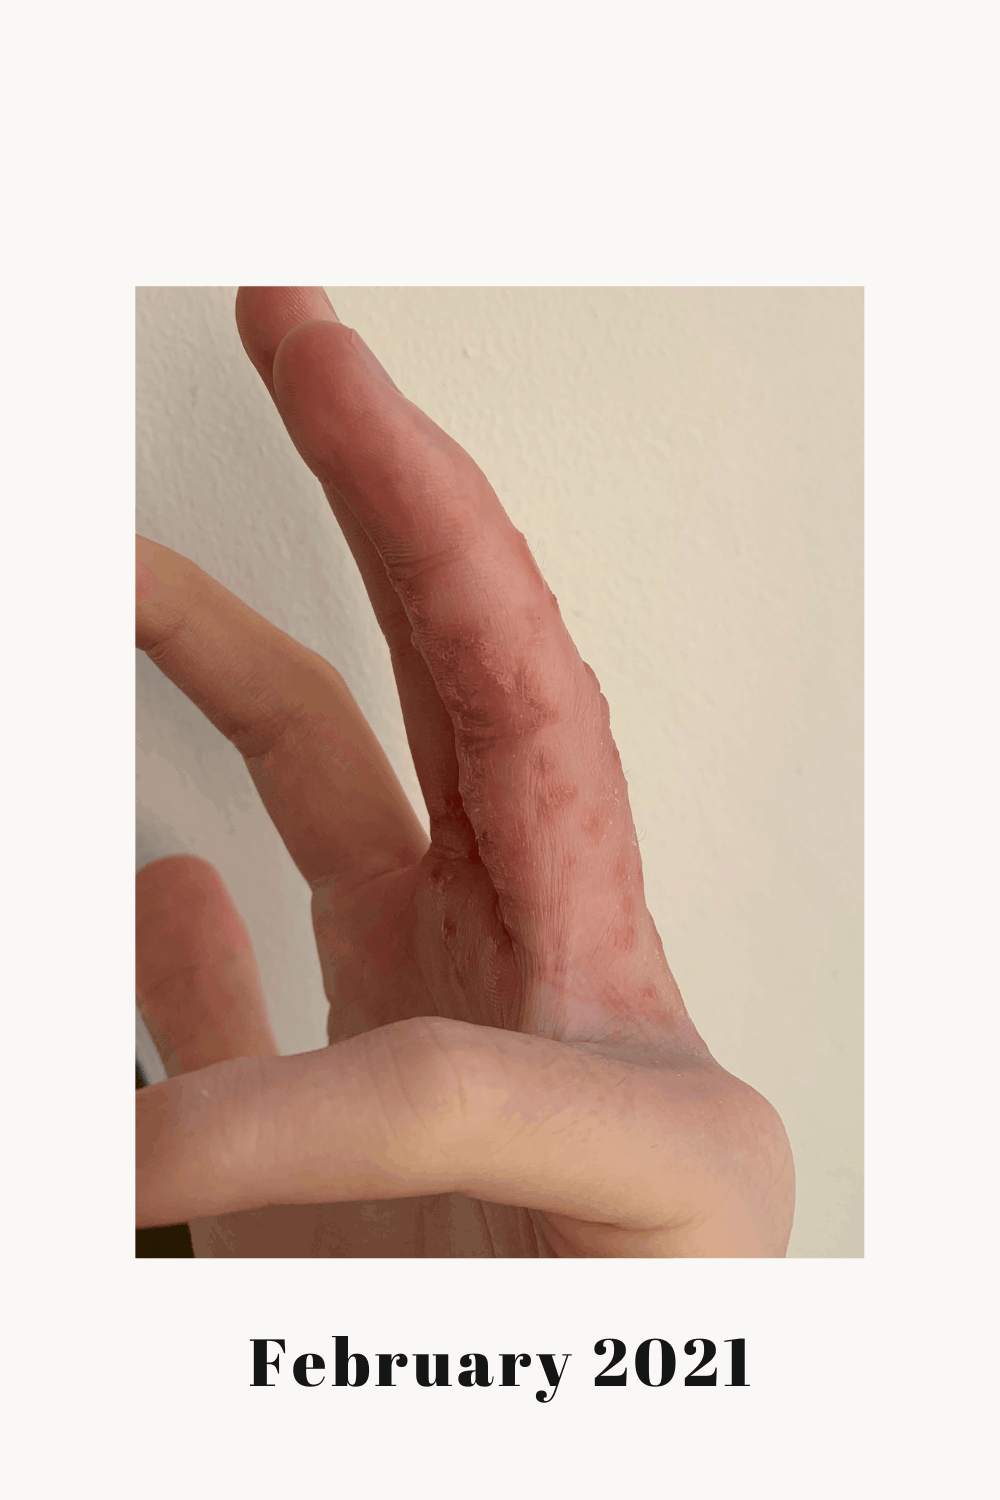 A side view showing the vesicles of my eczema.